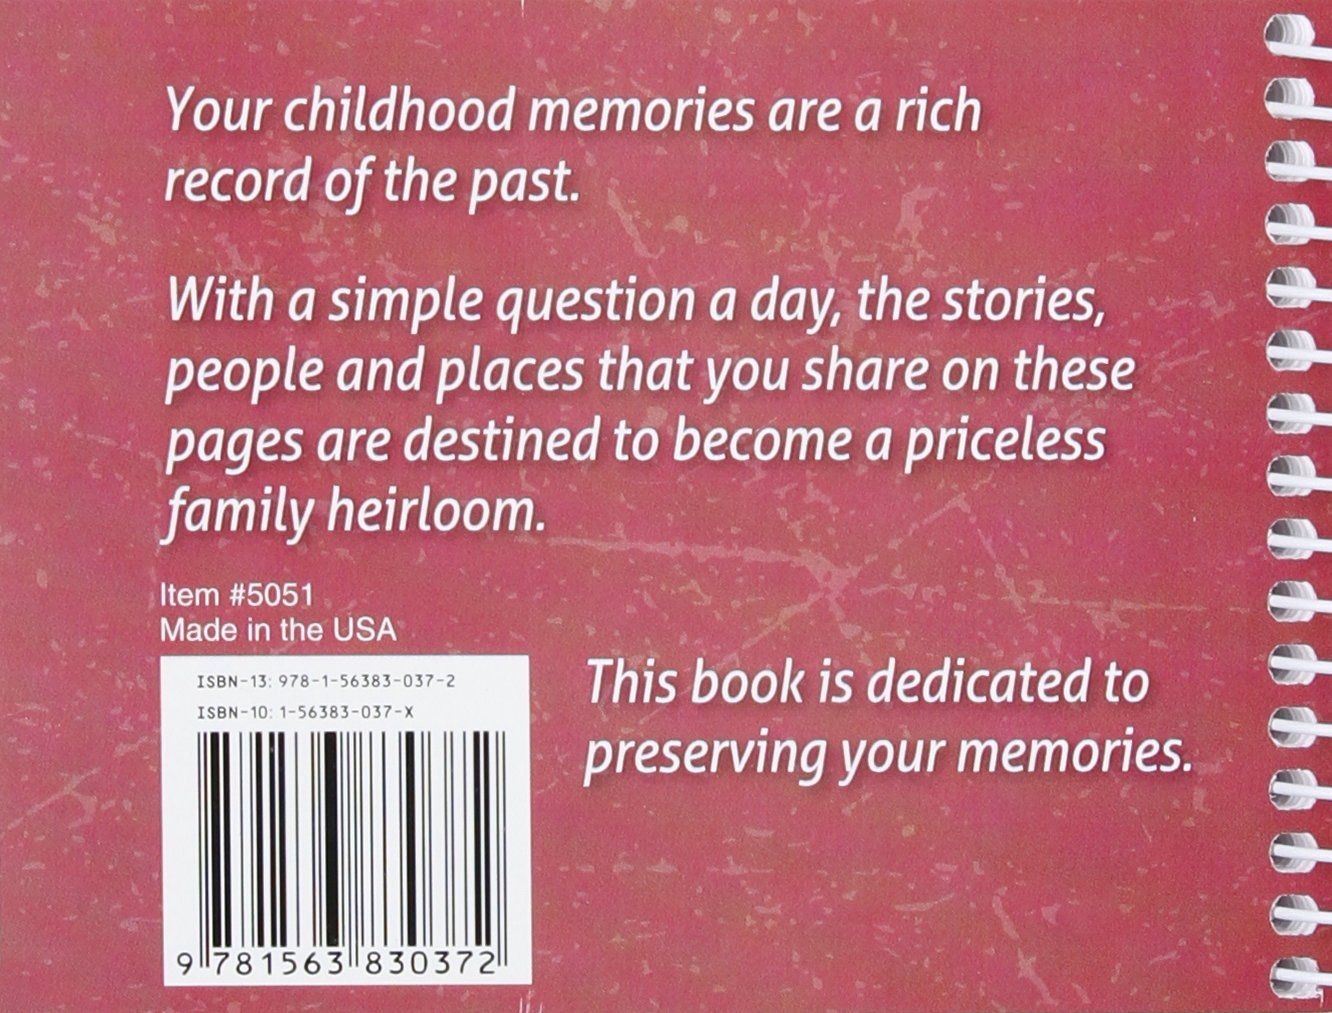 How to burn weight business using your childhood memories - Grandma Tell Me Your Memories Kathy Lashier 9781563830372 Amazon Com Books